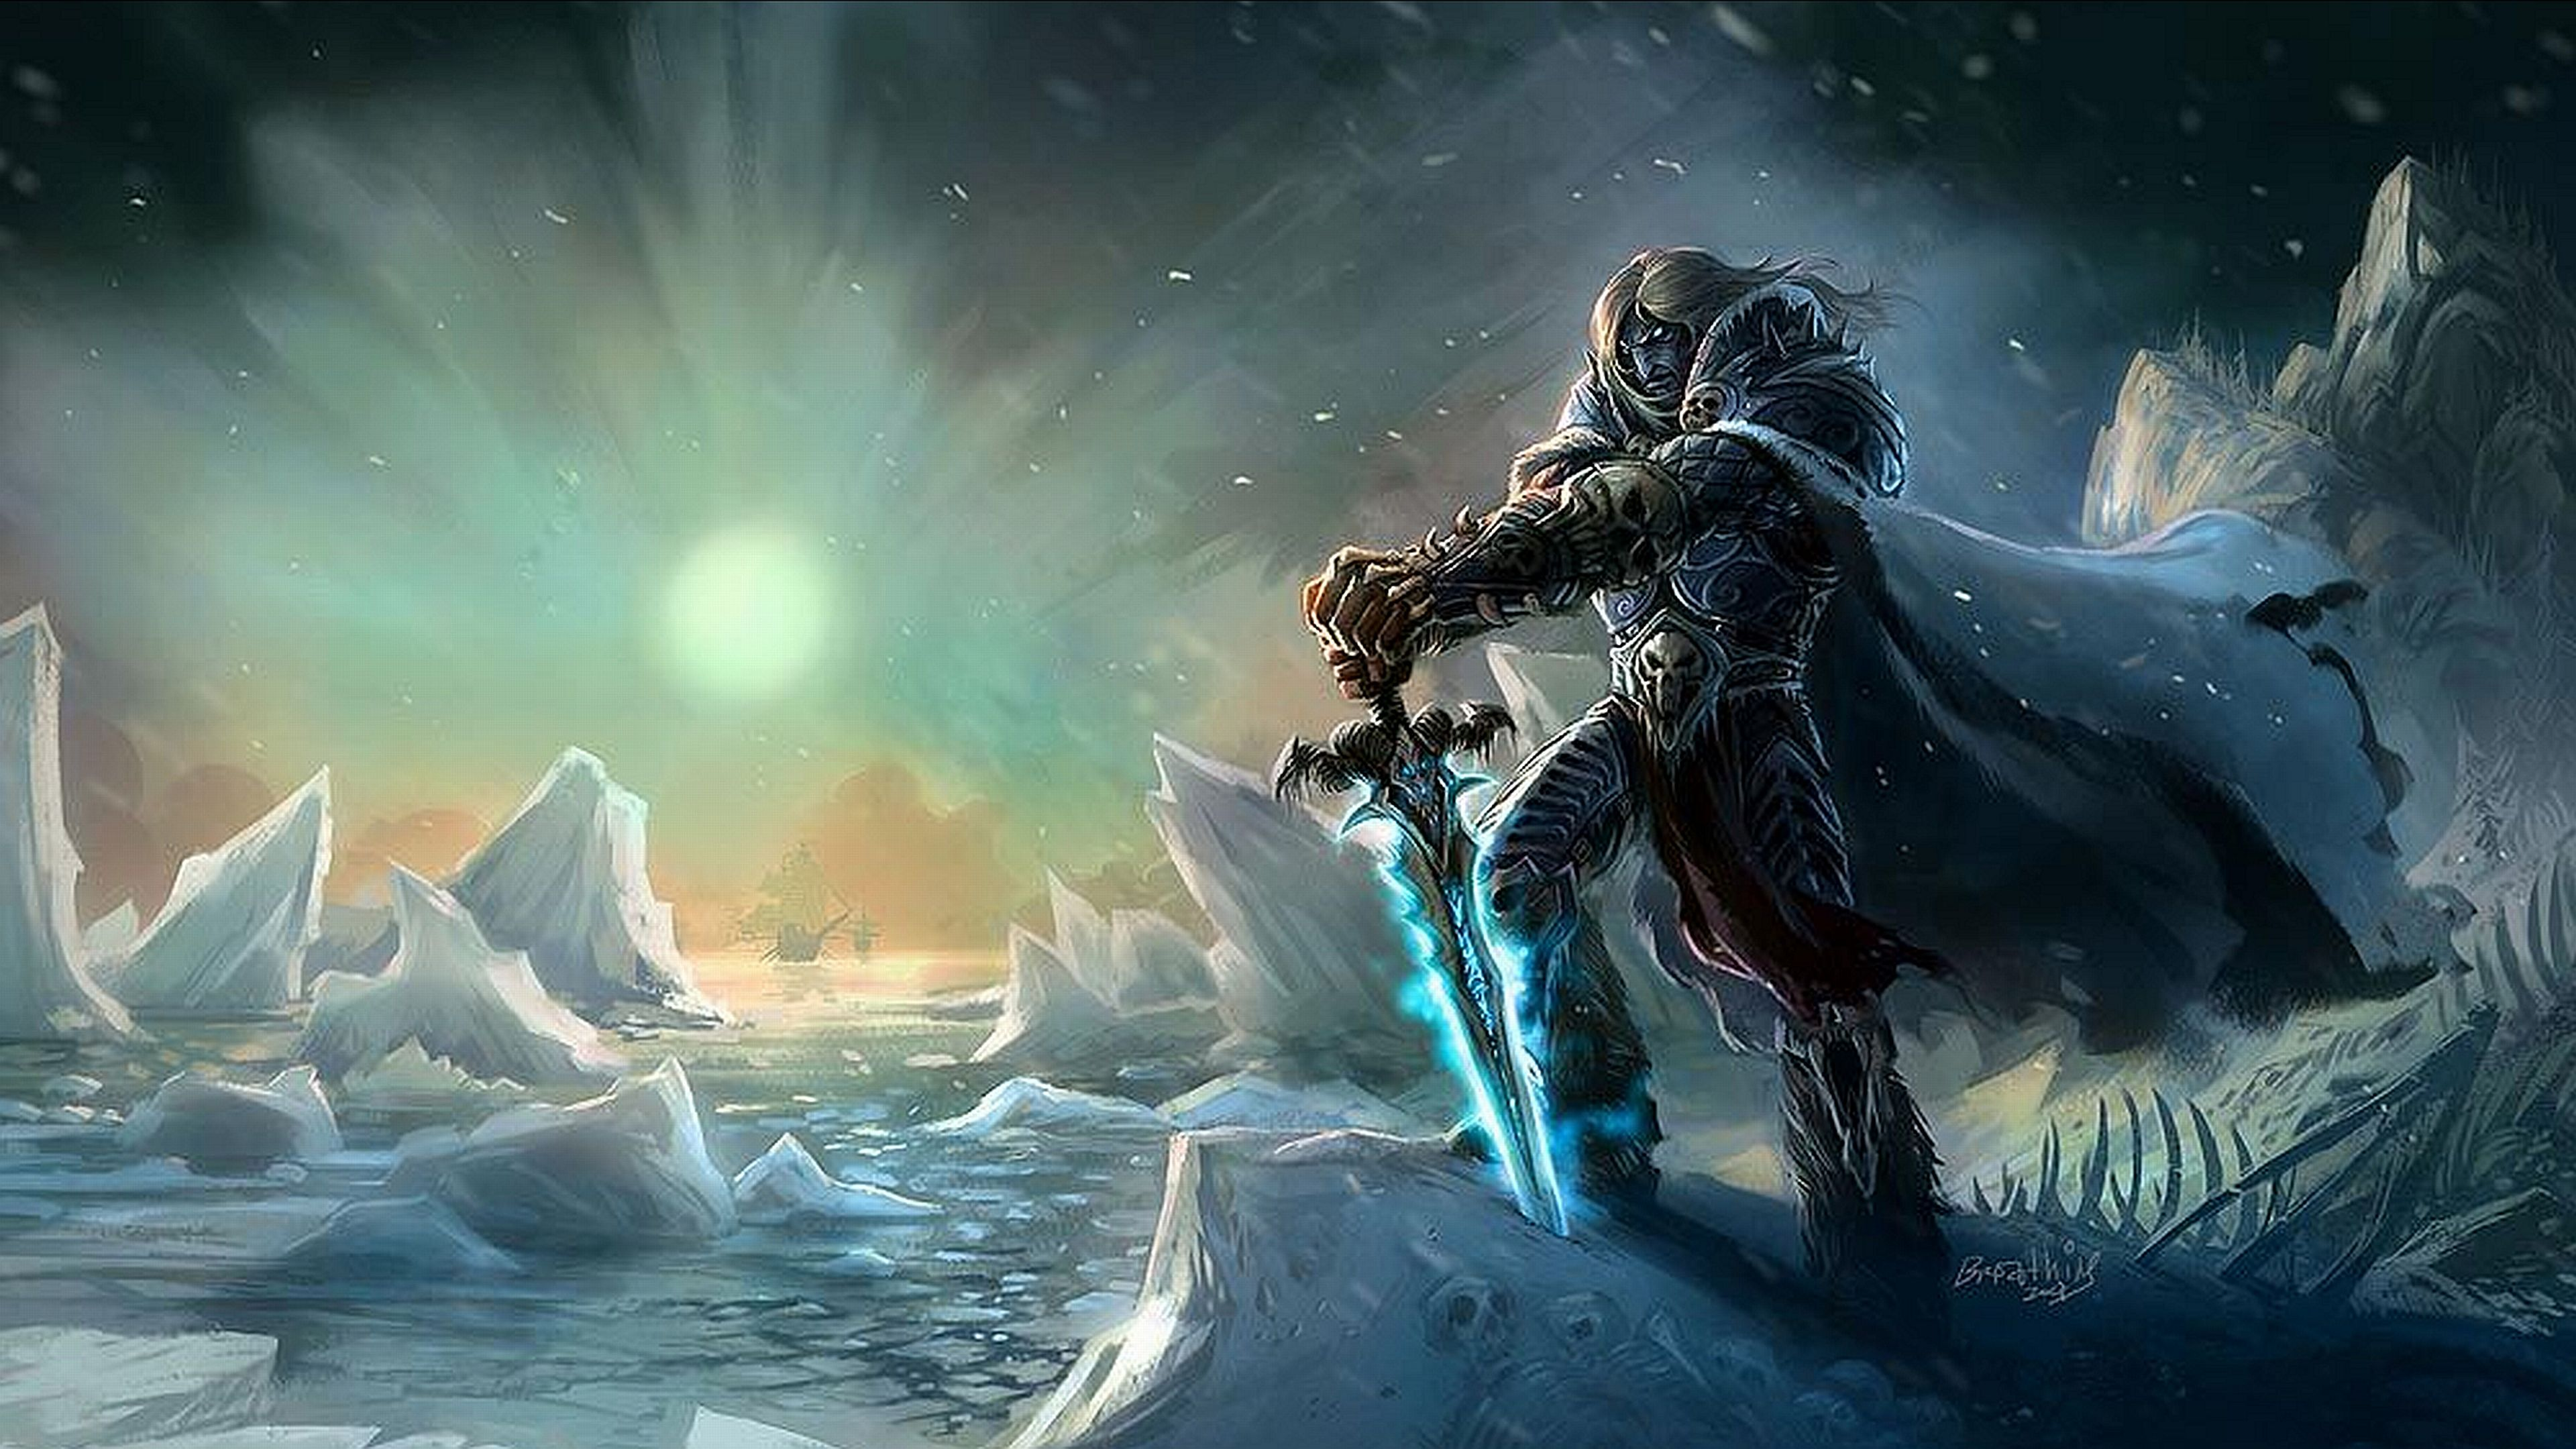 Warcraft Hd Wallpapers 2 3840 X 2160 World Of Warcraft World